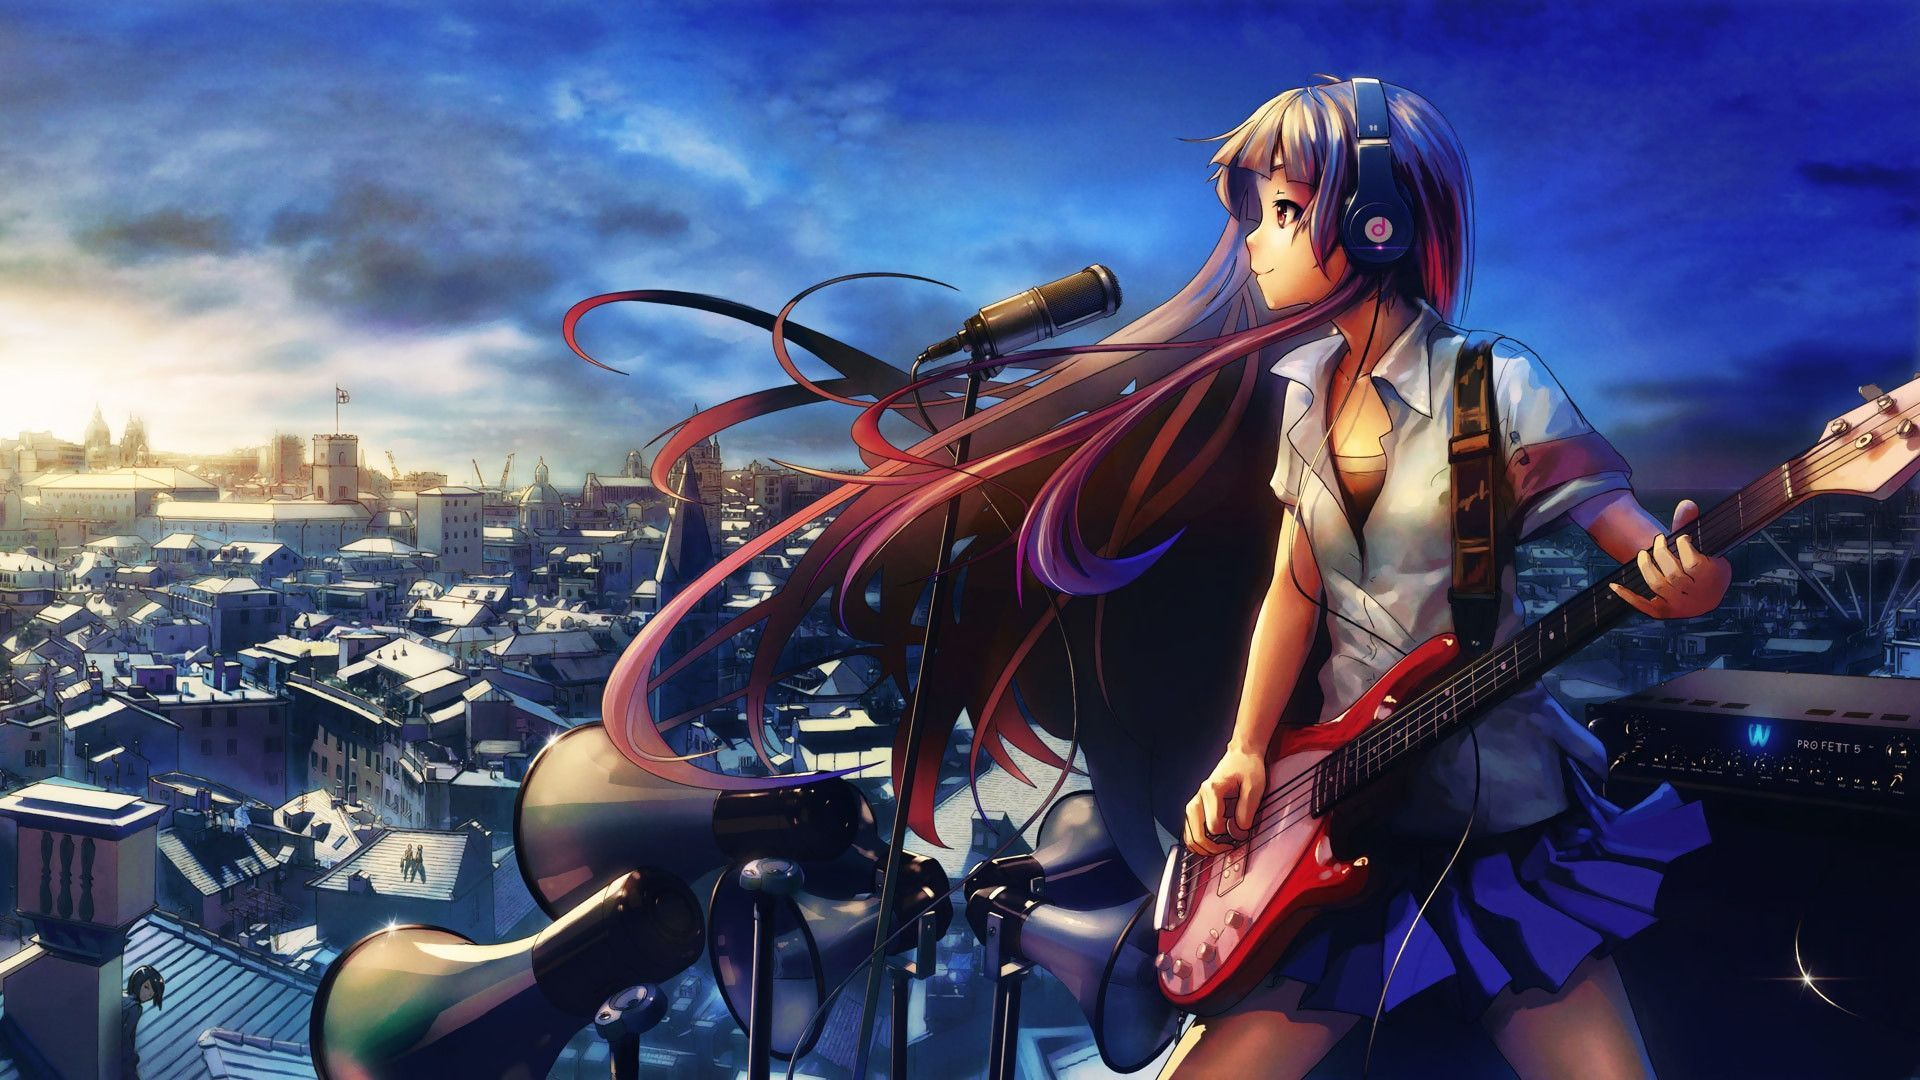 Wallpaper Anime Hd 1080p Pc Download Wallpaper 1920x1080 Girl Guitar Microphone Anime Wallpapers In 2020 Hd Anime Wallpapers Anime Wallpaper Anime Wallpaper Download